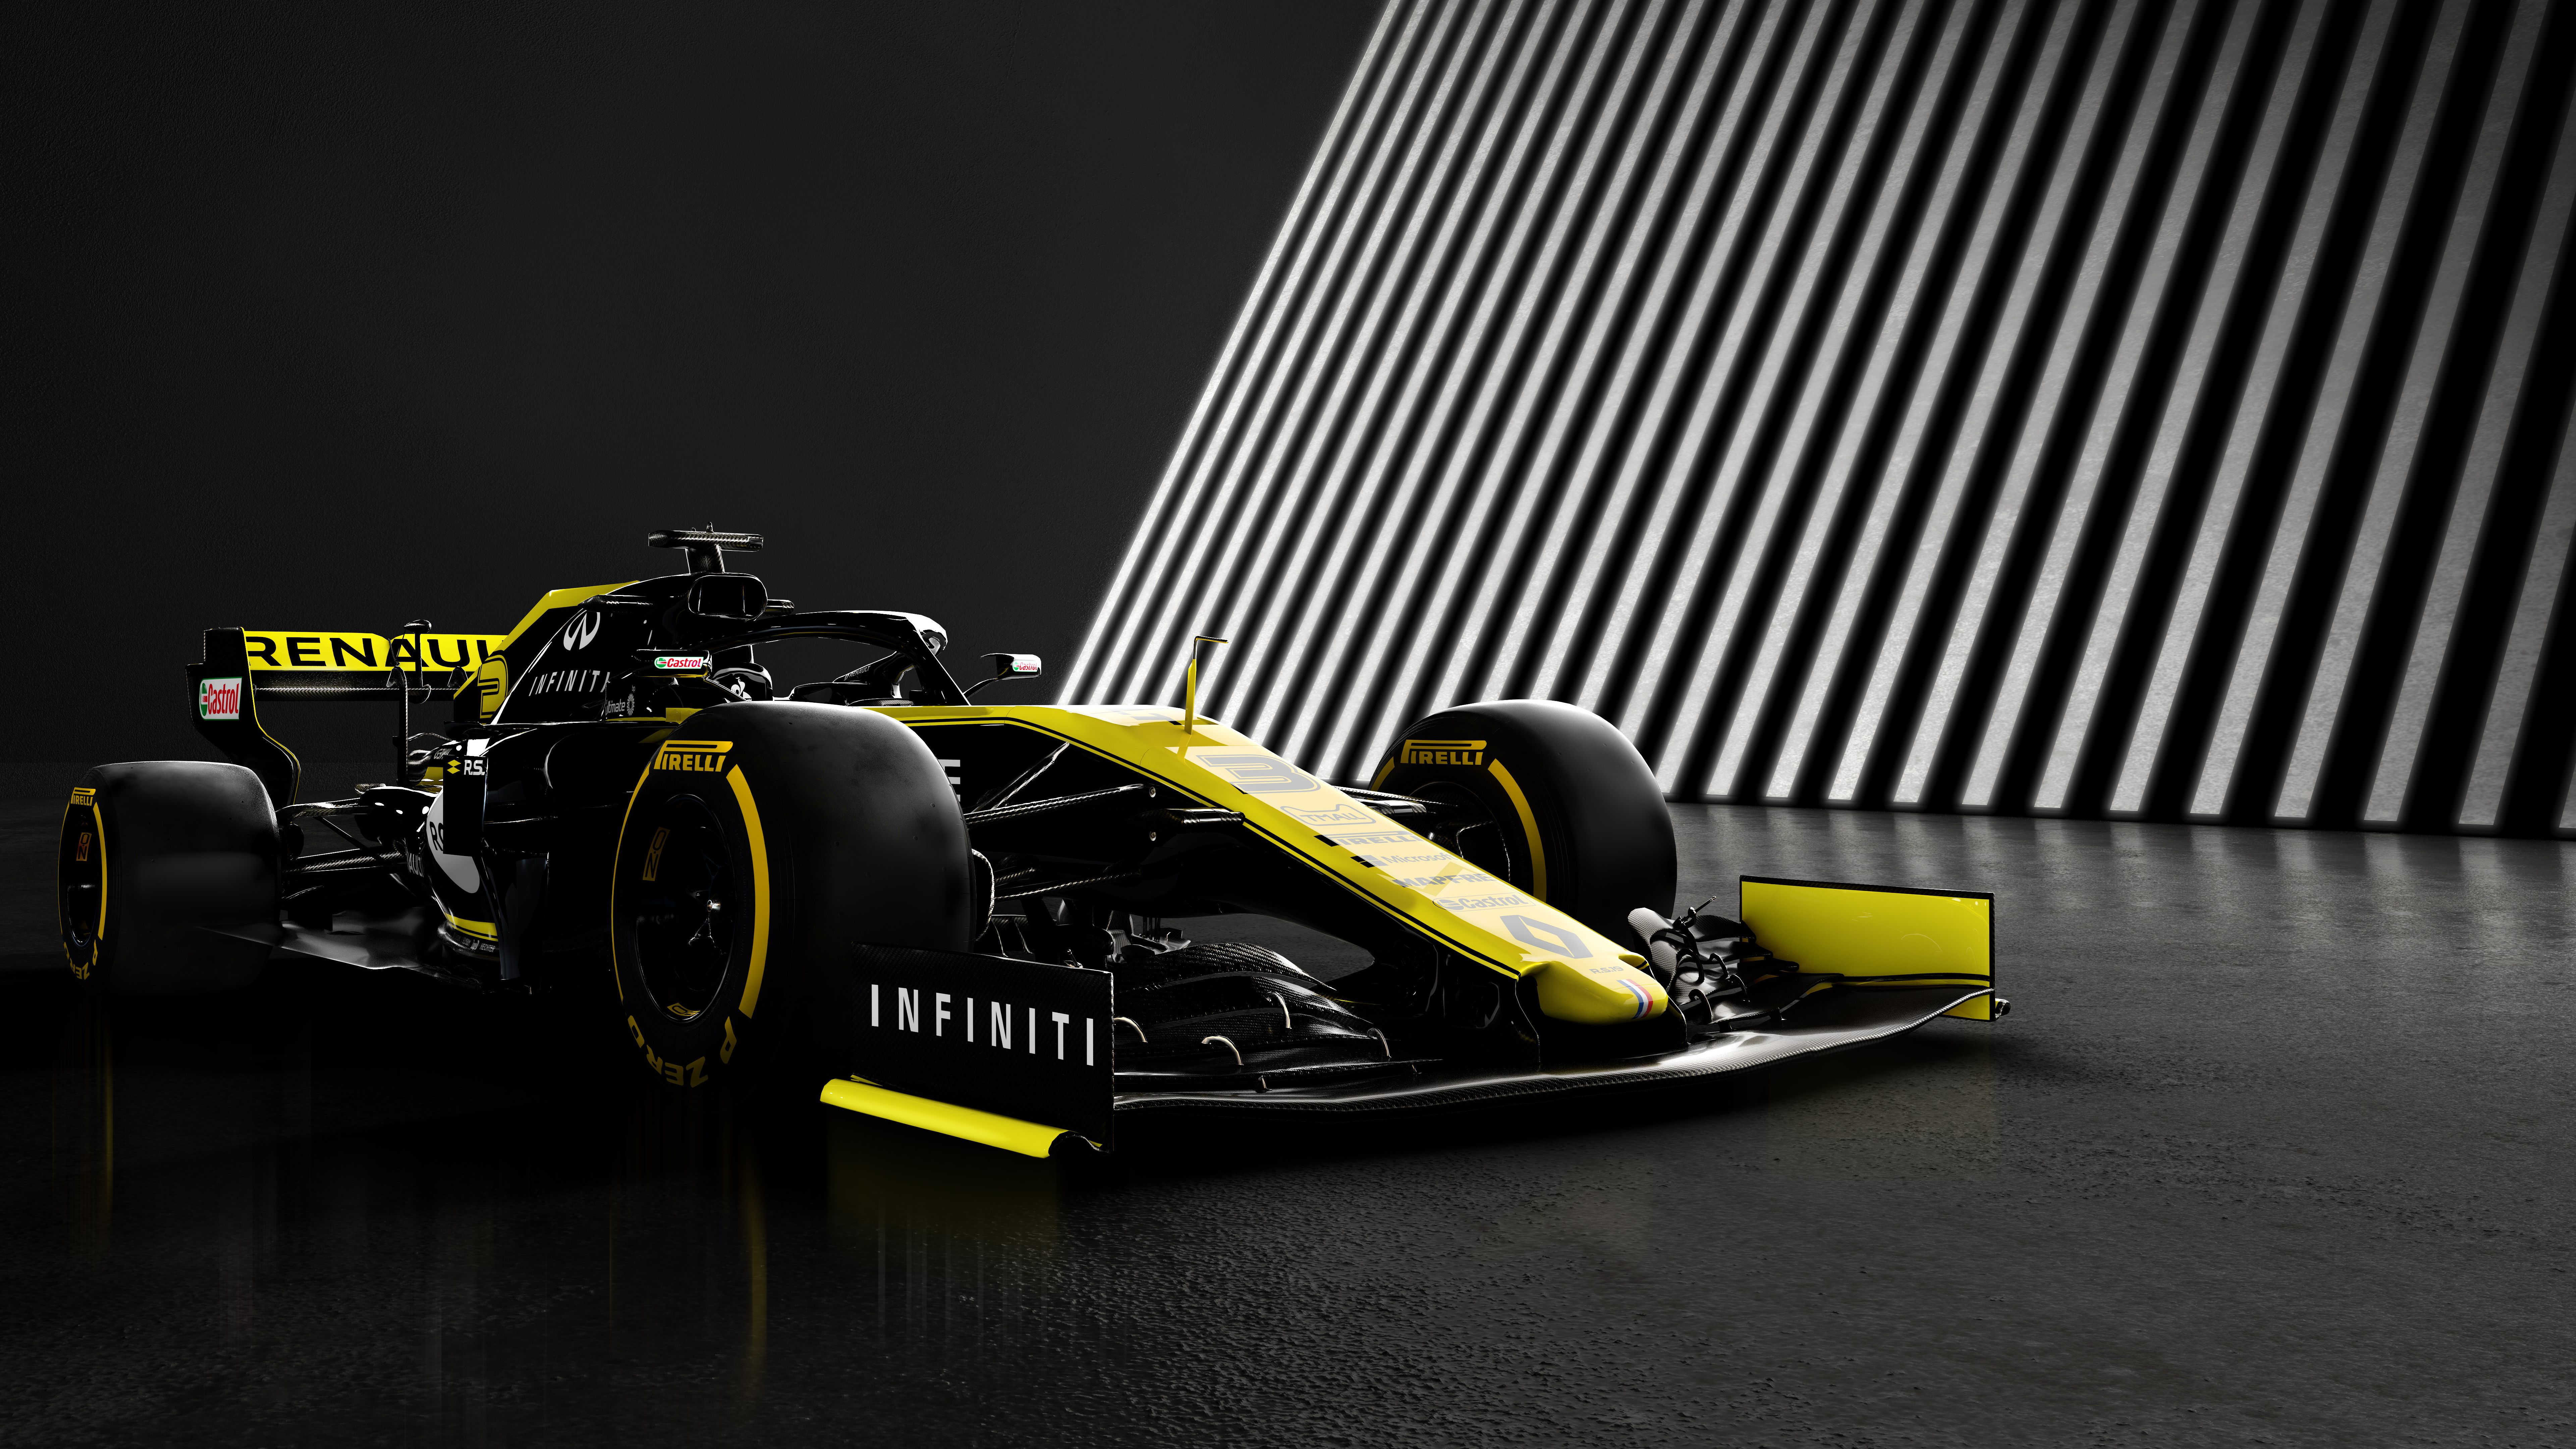 F1 2019 Wallpapers Top Free F1 2019 Backgrounds Wallpaperaccess